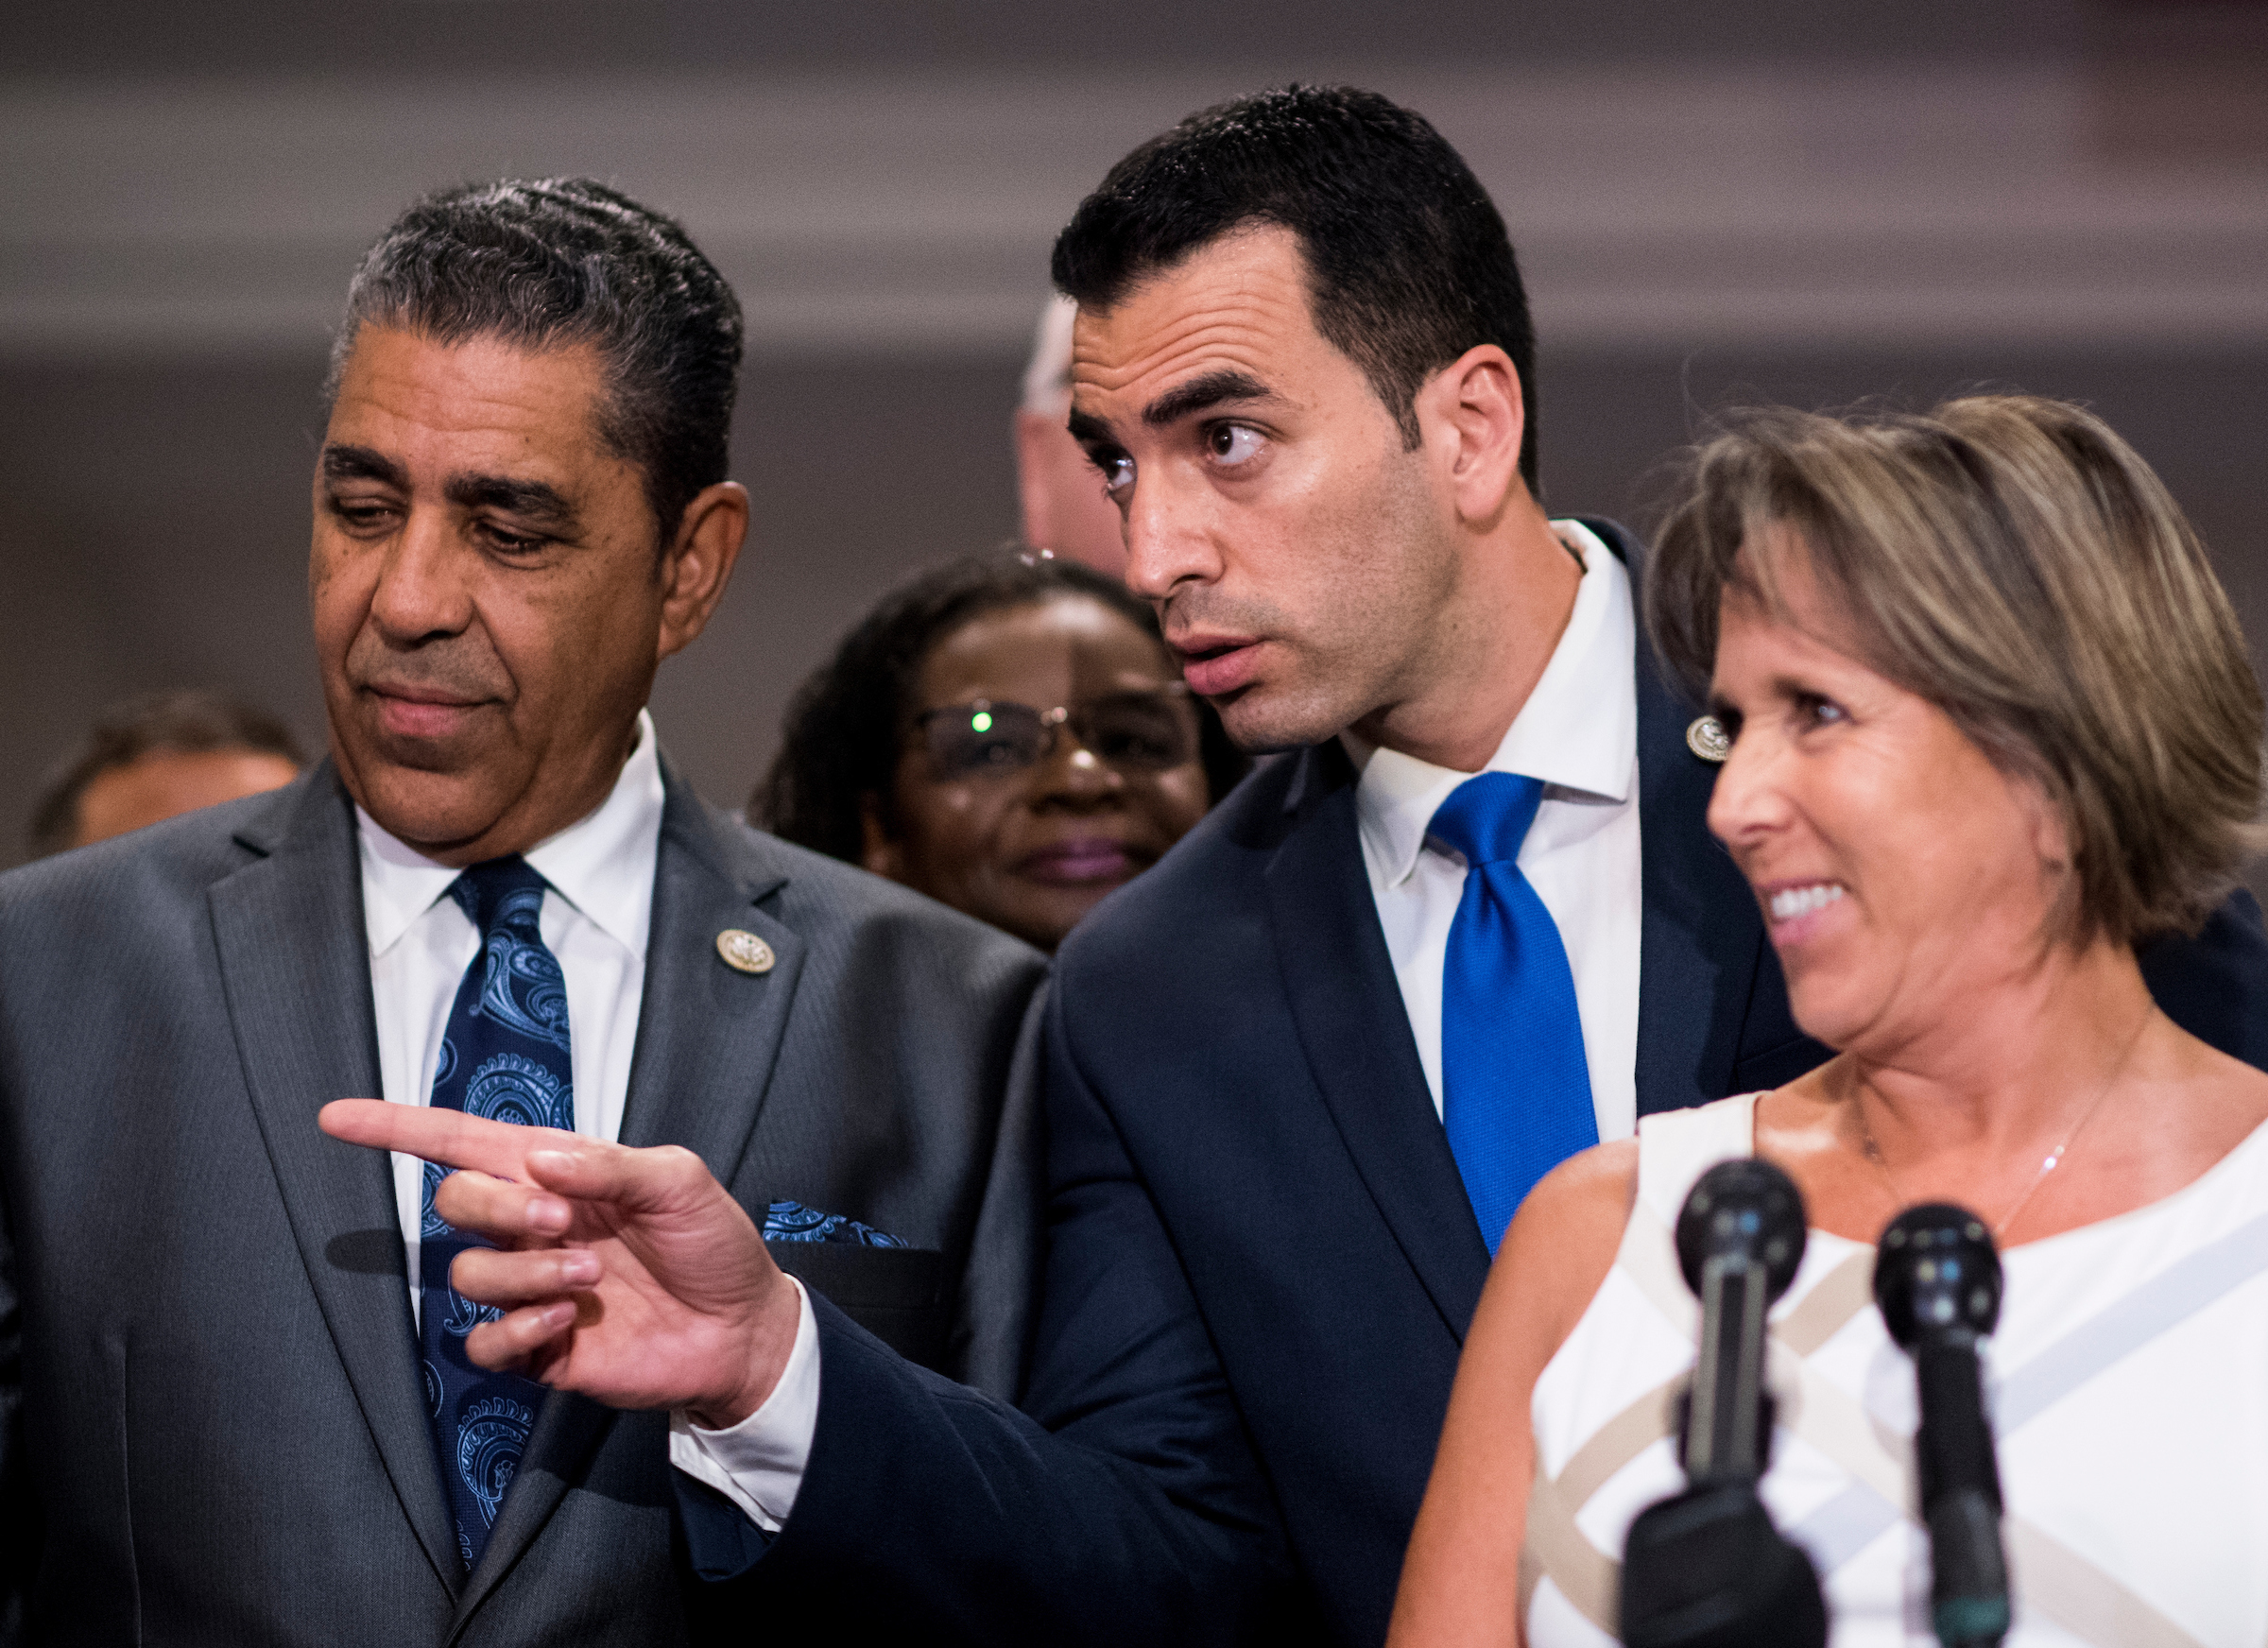 UNITED STATES - SEPTEMBER 5: From left, Rep. Adriano Espaillat, D-N.Y., Rep. Ruben Kihuen, D-Nev., and Congressional Hispanic Caucus chairwoman Rep. Michelle Lujan Grisham, D-N.M., gather in the Capitol with other House Democrats in solidarity with DREAMers and to speak out against President Trump's decision to end DACA on Tuesday, Sept. 5, 2017. Reps. Kihuen and Espaillat are the first formerly undocumented Members to serve in Congress. (Photo By Bill Clark/CQ Roll Call)